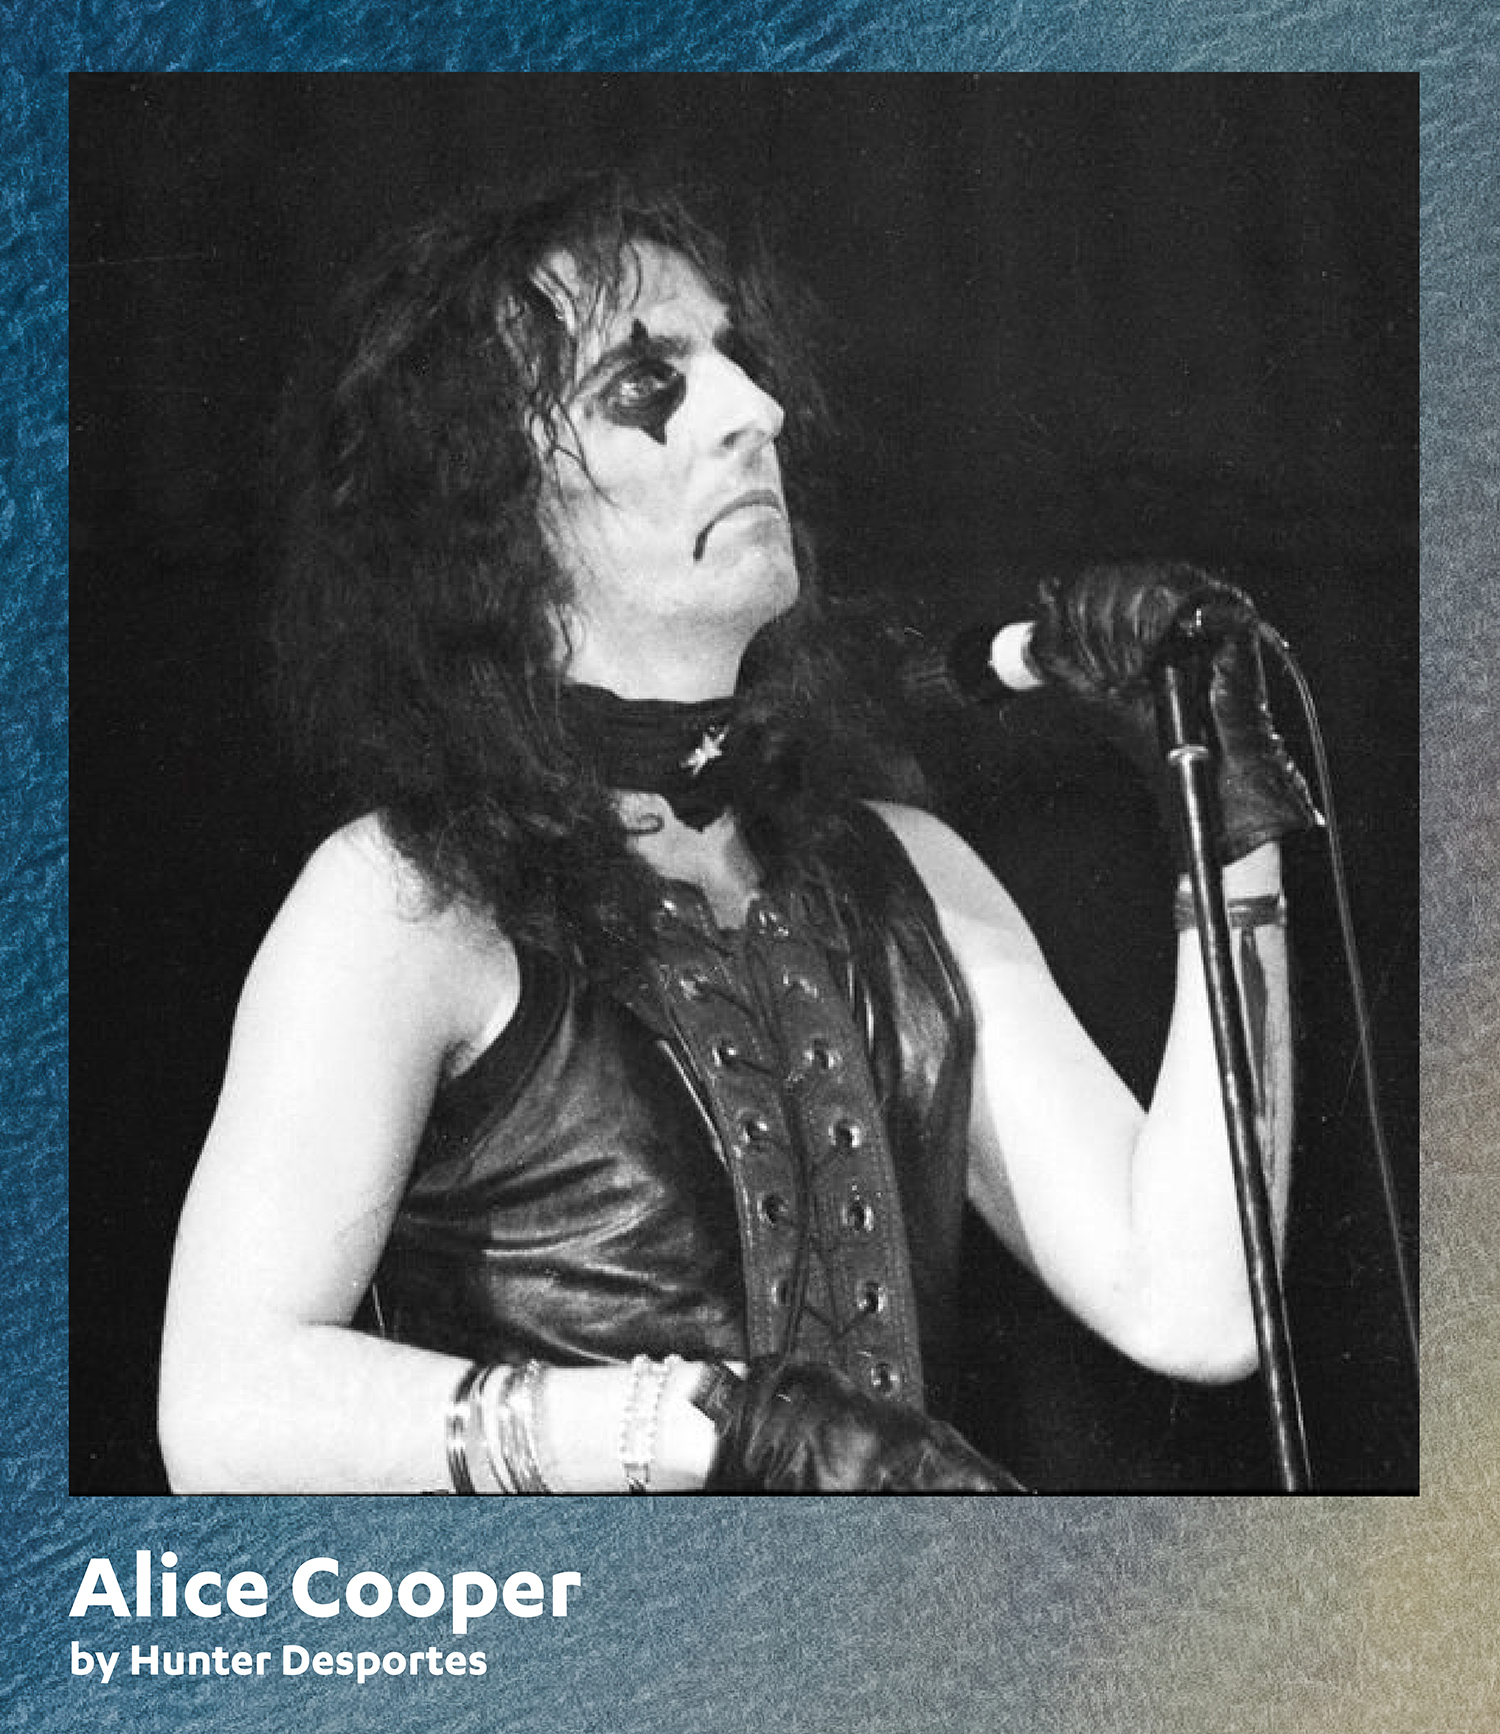 Alice Cooper by Hunter Desportes